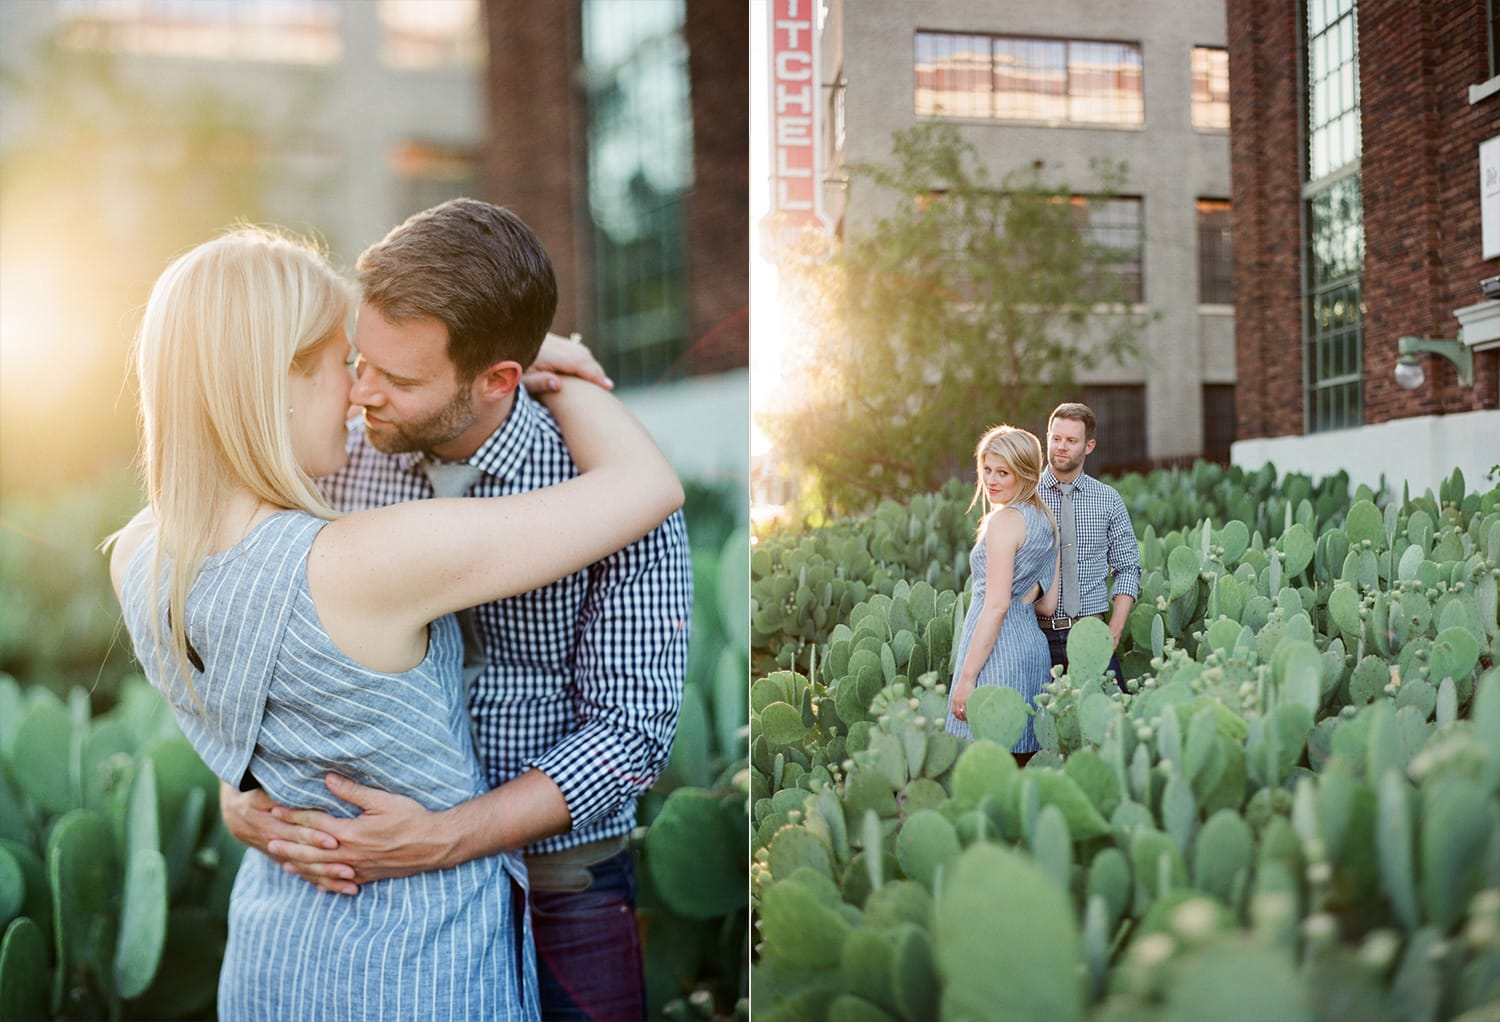 DEEP_ELLUM_TX_FILM_ENGAGEMENT_SHOOT__MATTHEW_MOORE_PHOTOGRAPHY_PAN_014.jpg